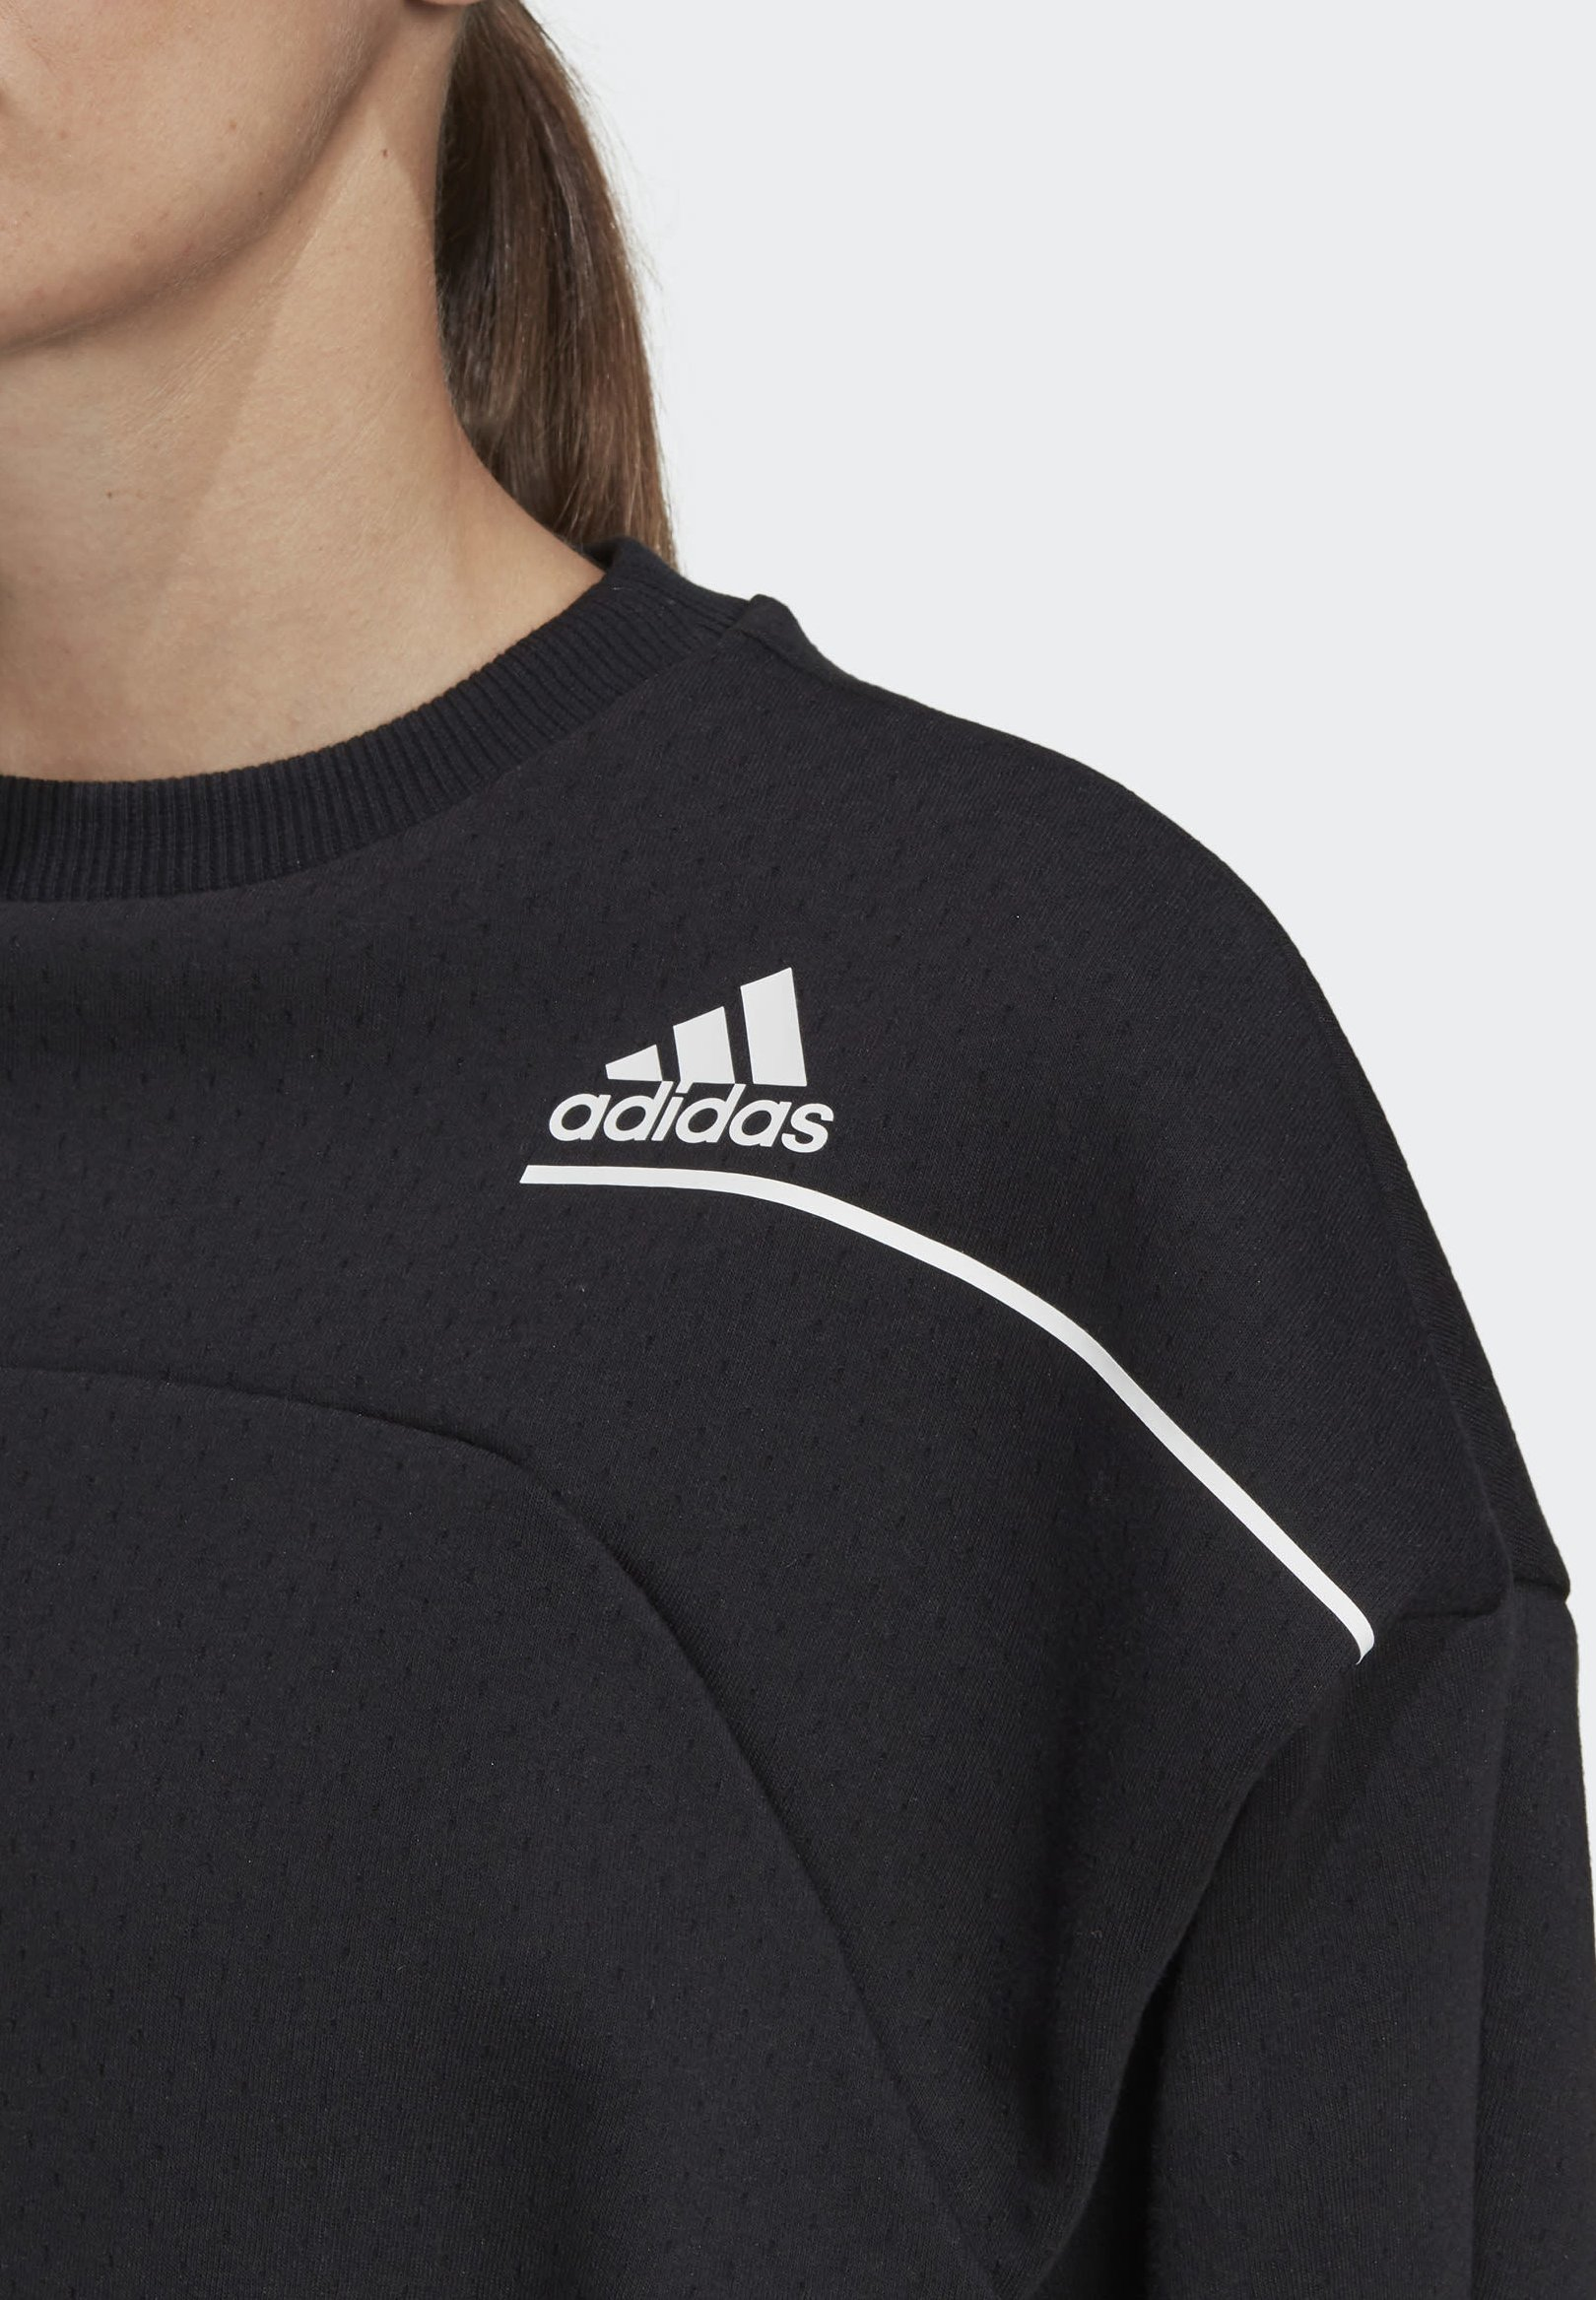 adidas Performance Sweatshirt - black CZTlL